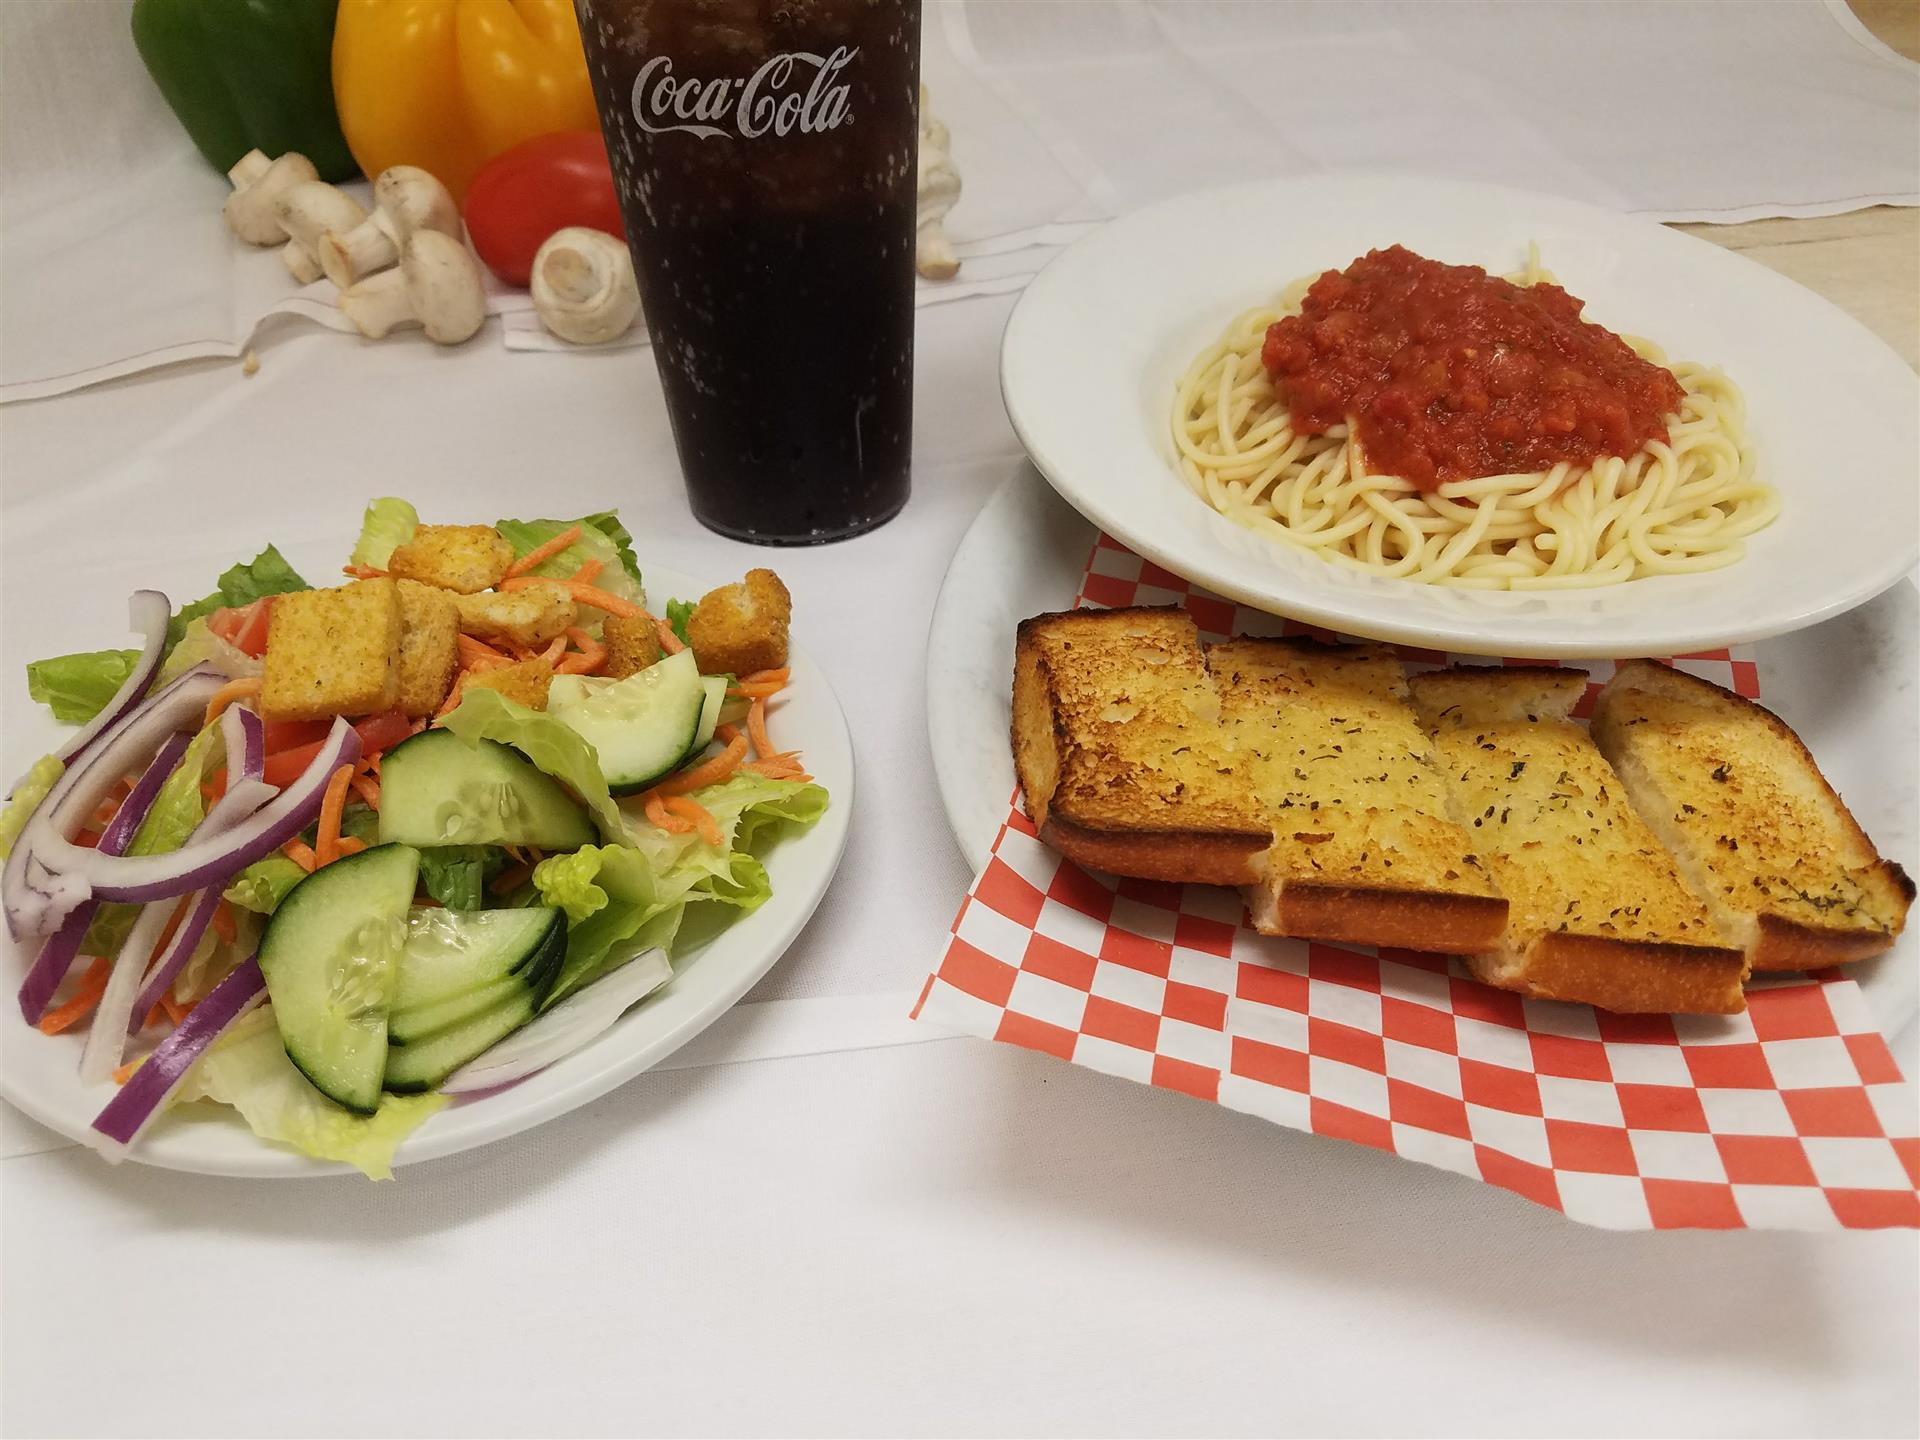 spaghetti with marinar ssuuace, house salad, and garlic bread with a soda